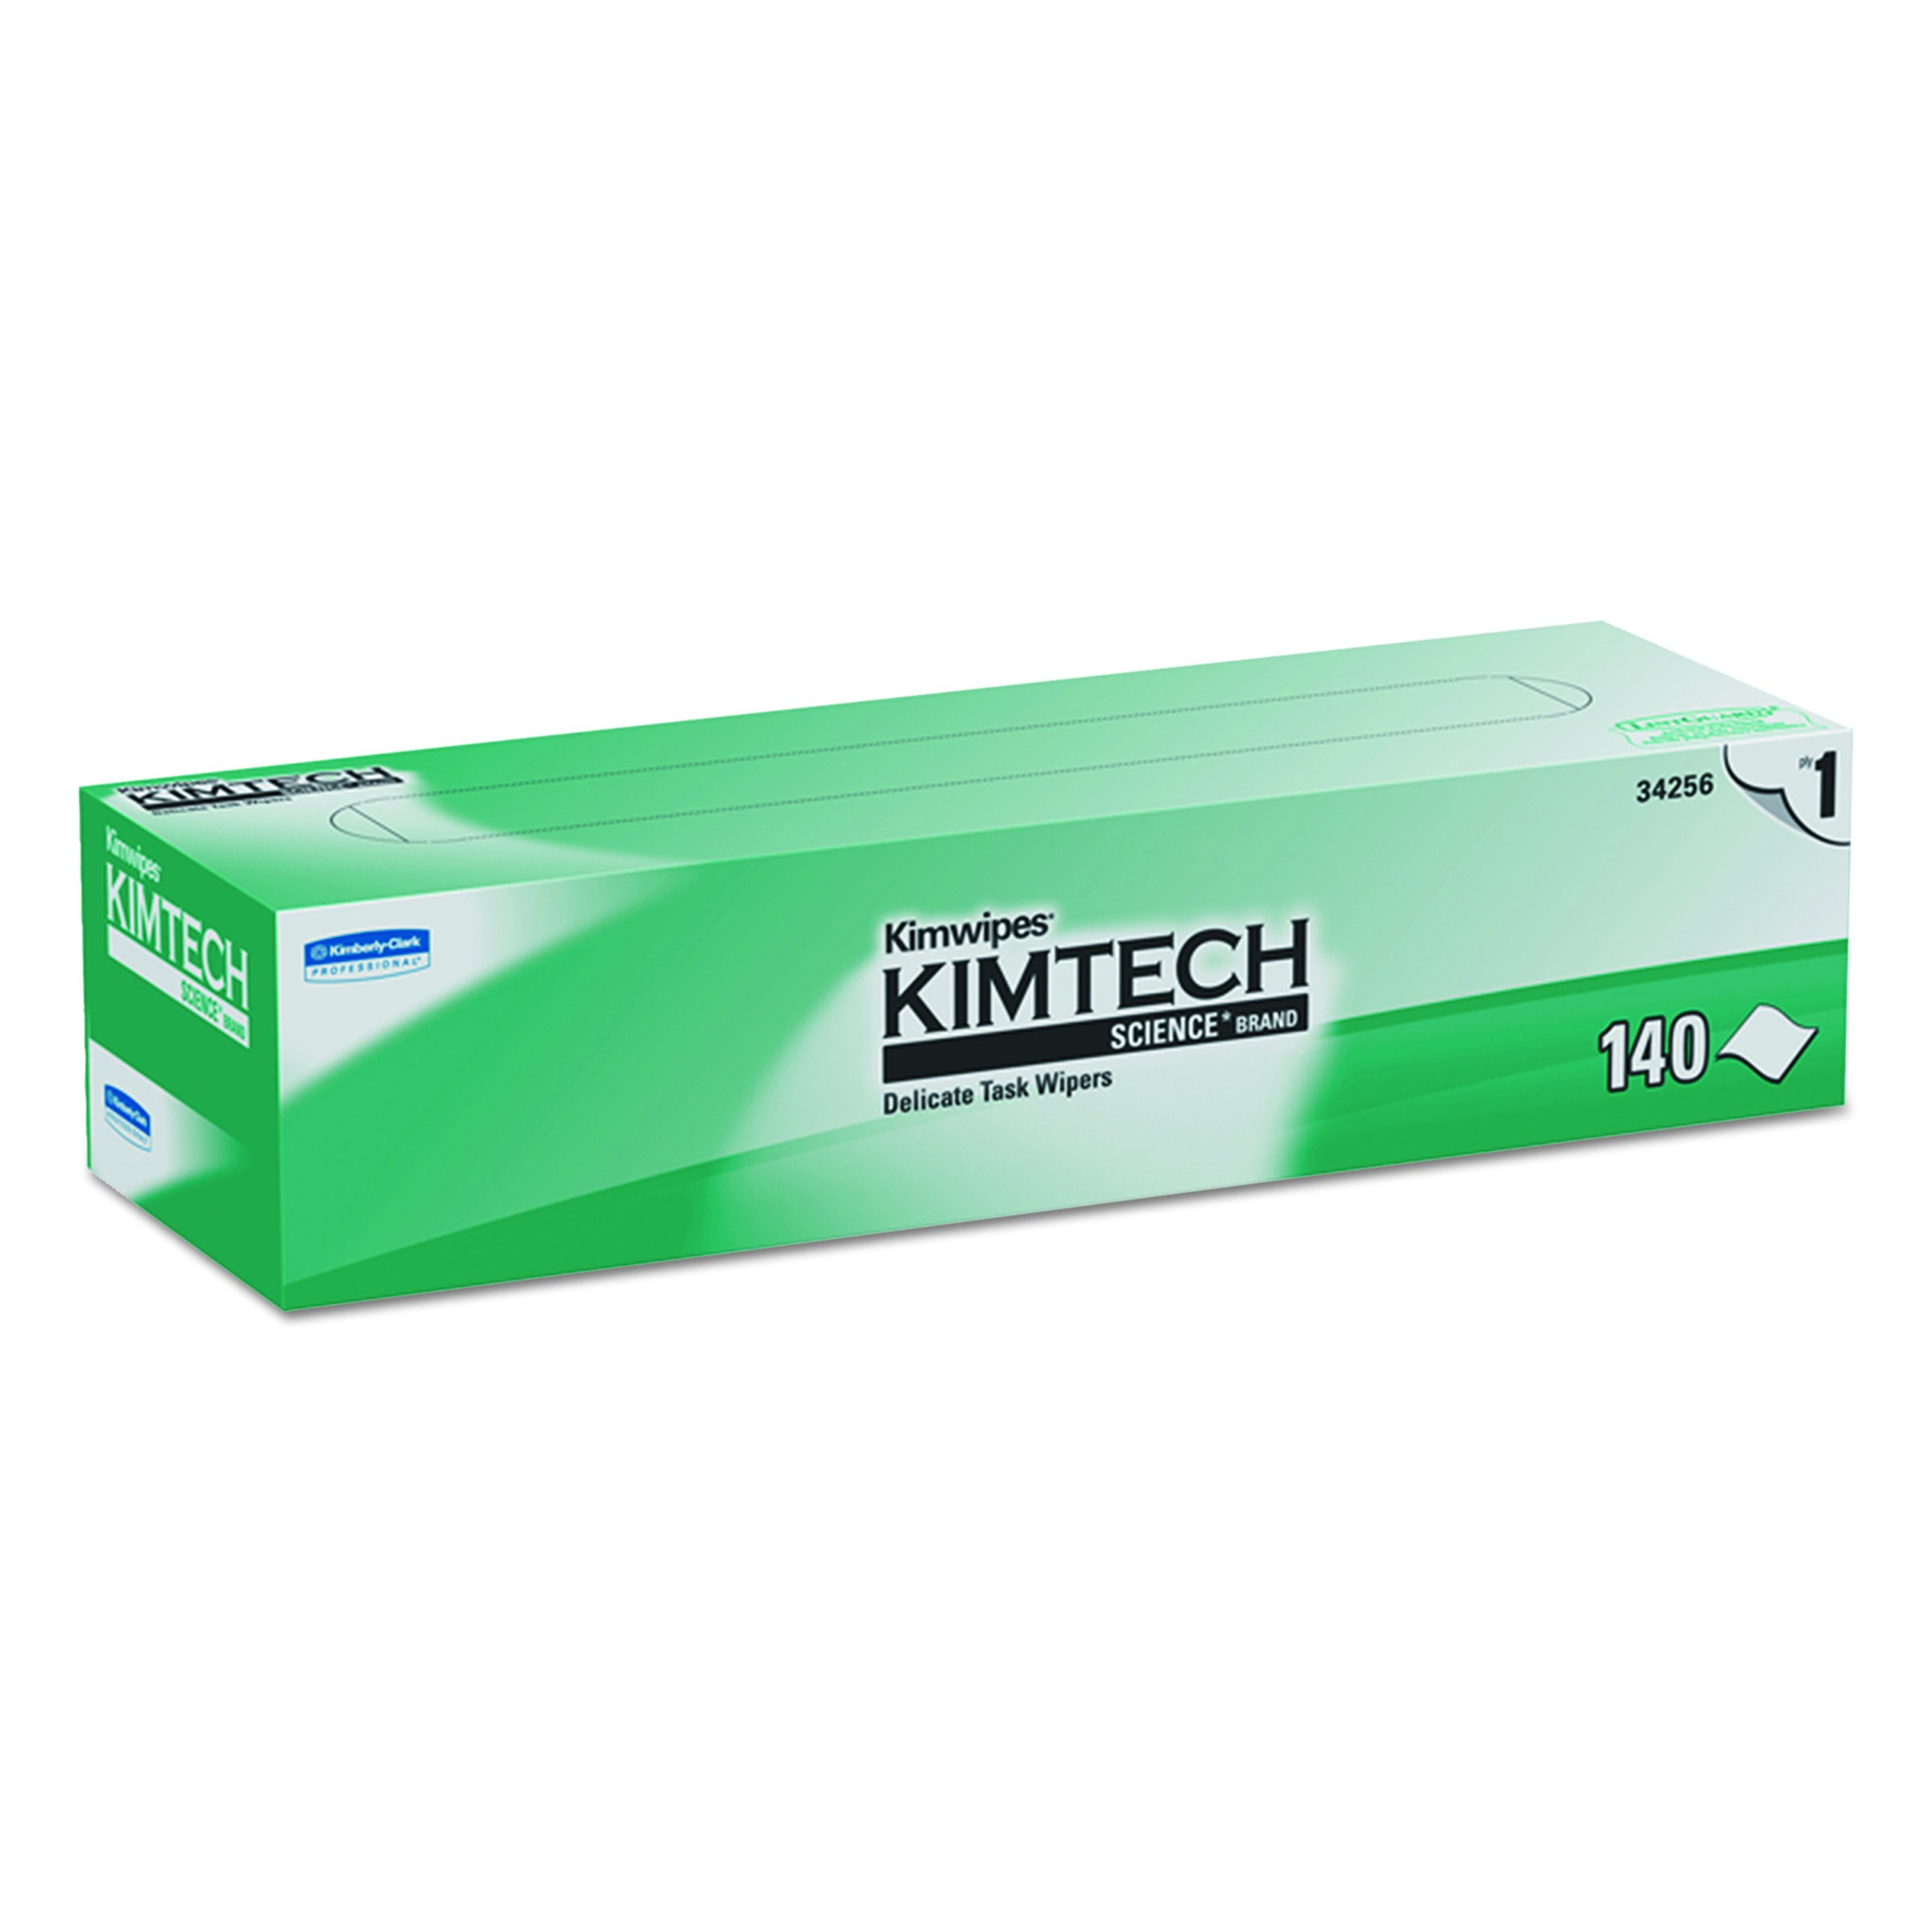 Kimtech 34256CT KIMWIPES Delicate Task Wipers, 1-Ply, 14 7/10 x 16 3/5, Box of 140 (Case of 15 Boxes)